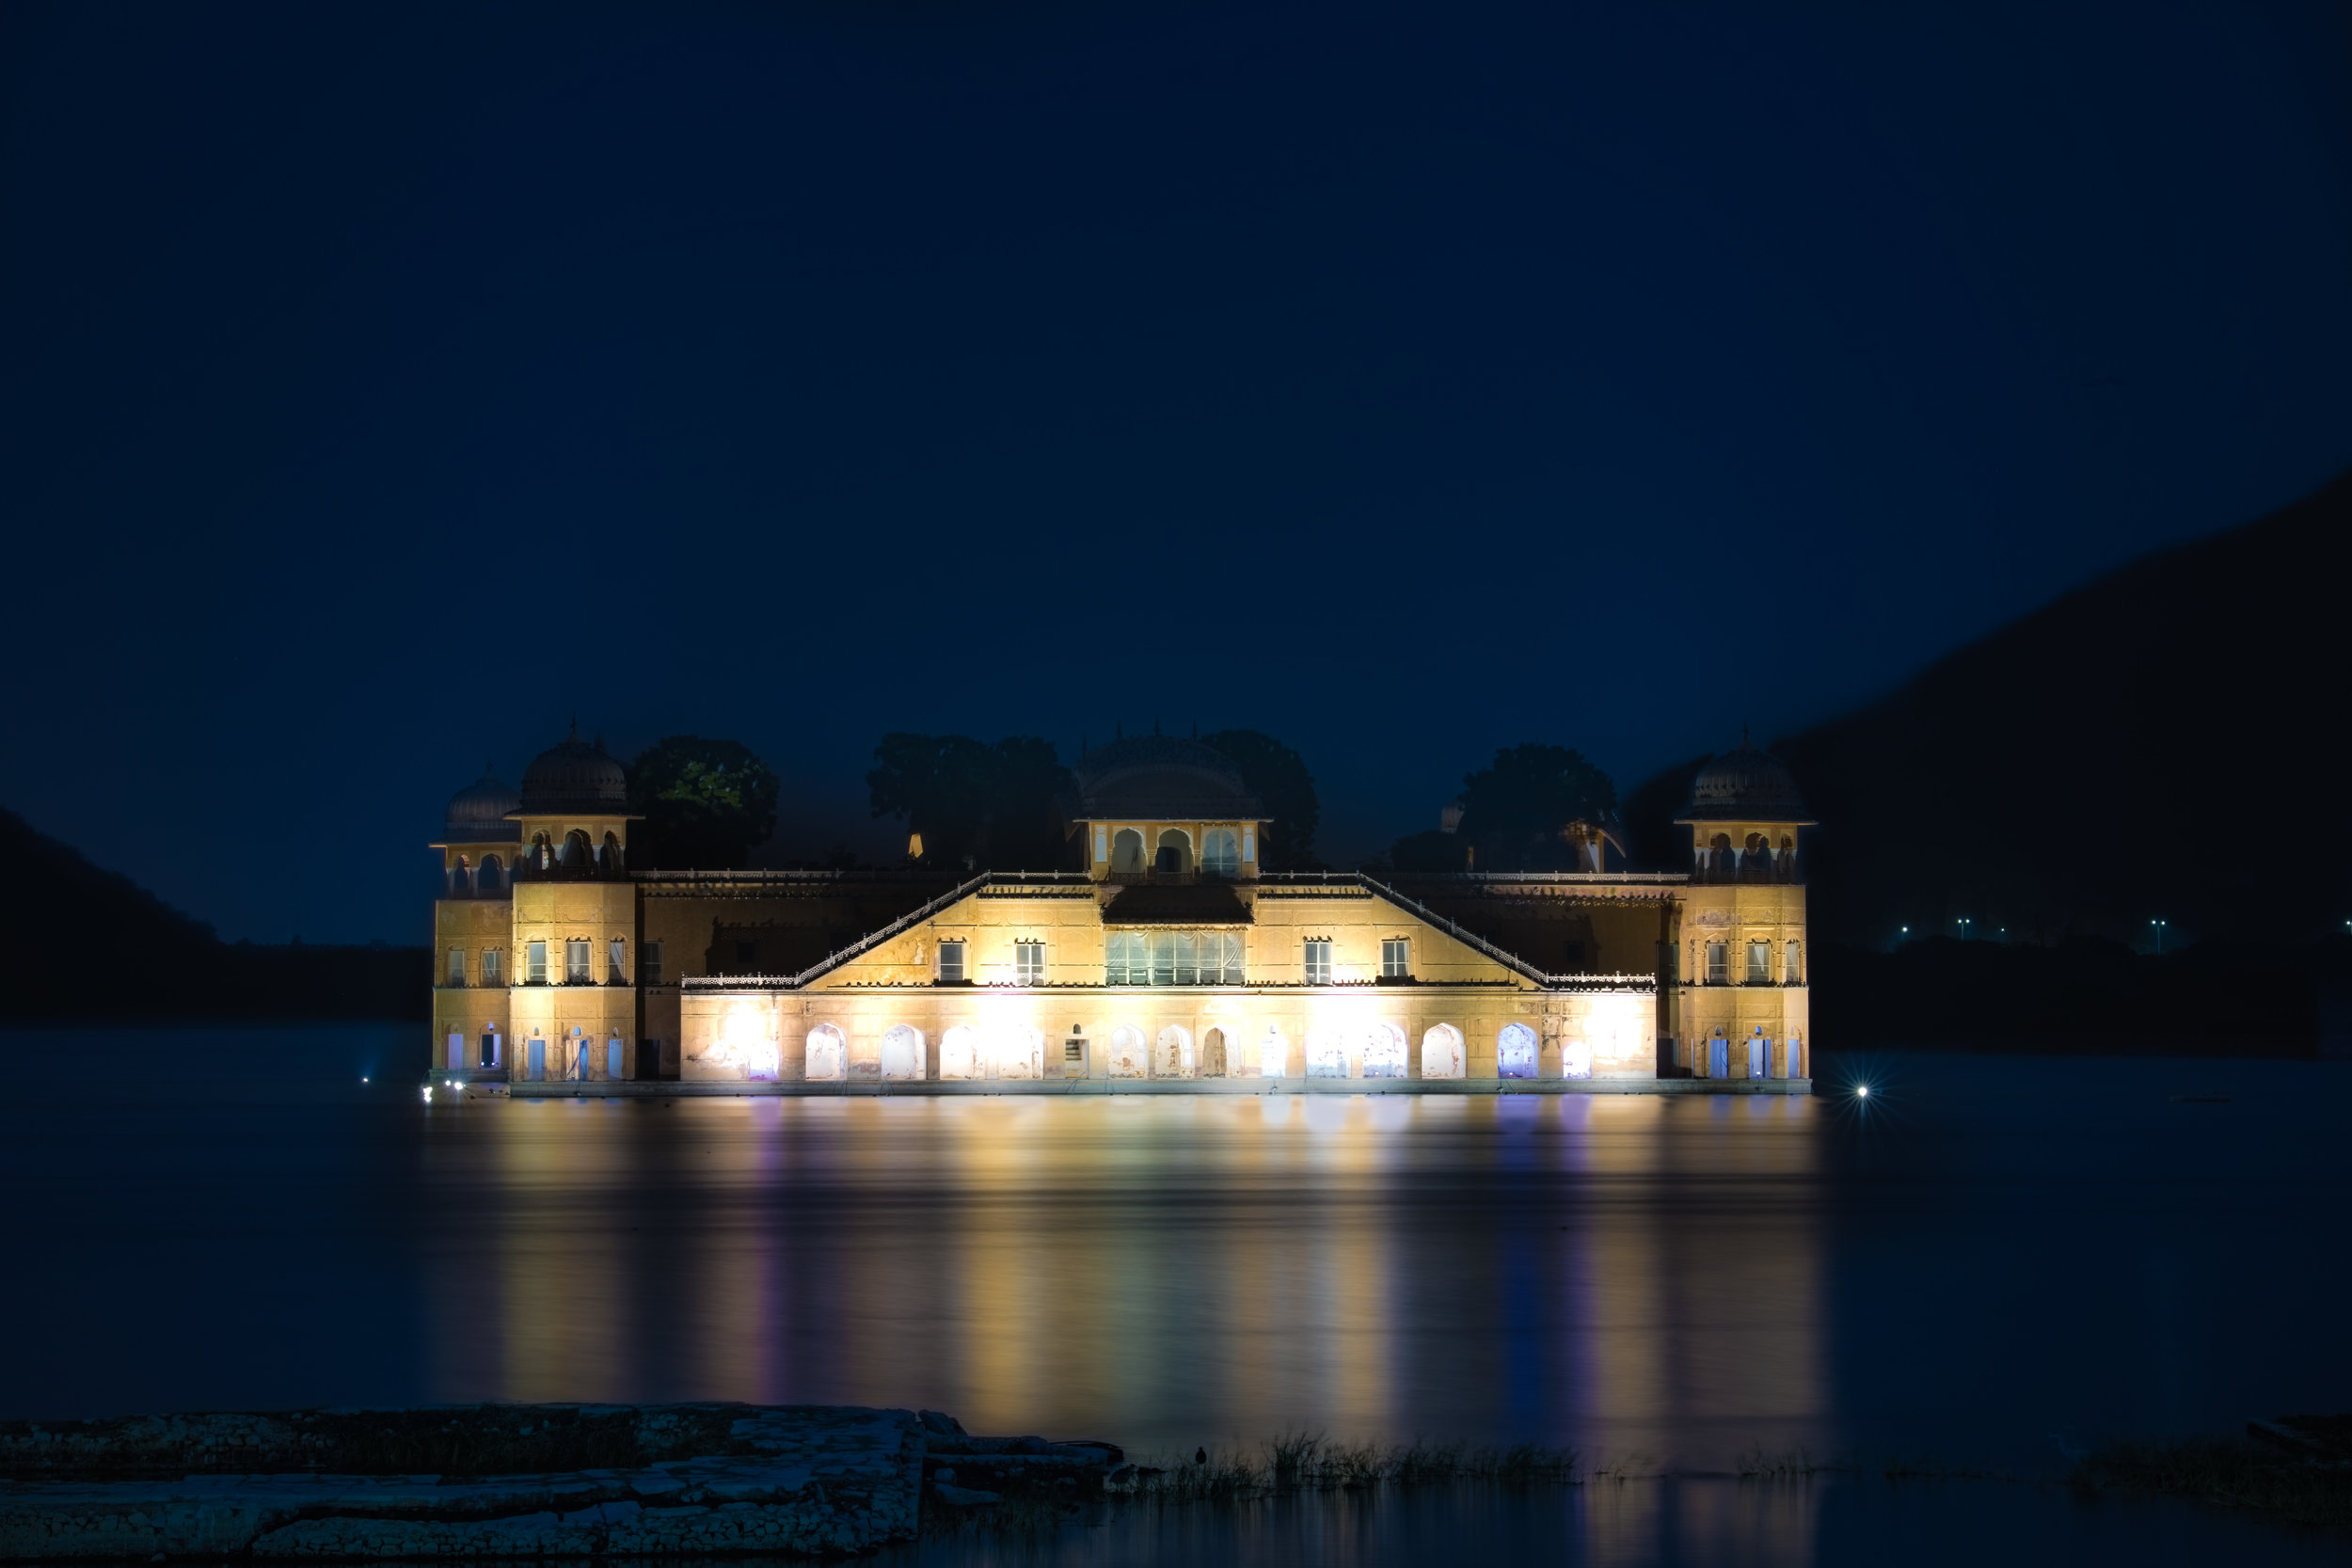 The illuminated Jawa Mahal reflecting in the lake.